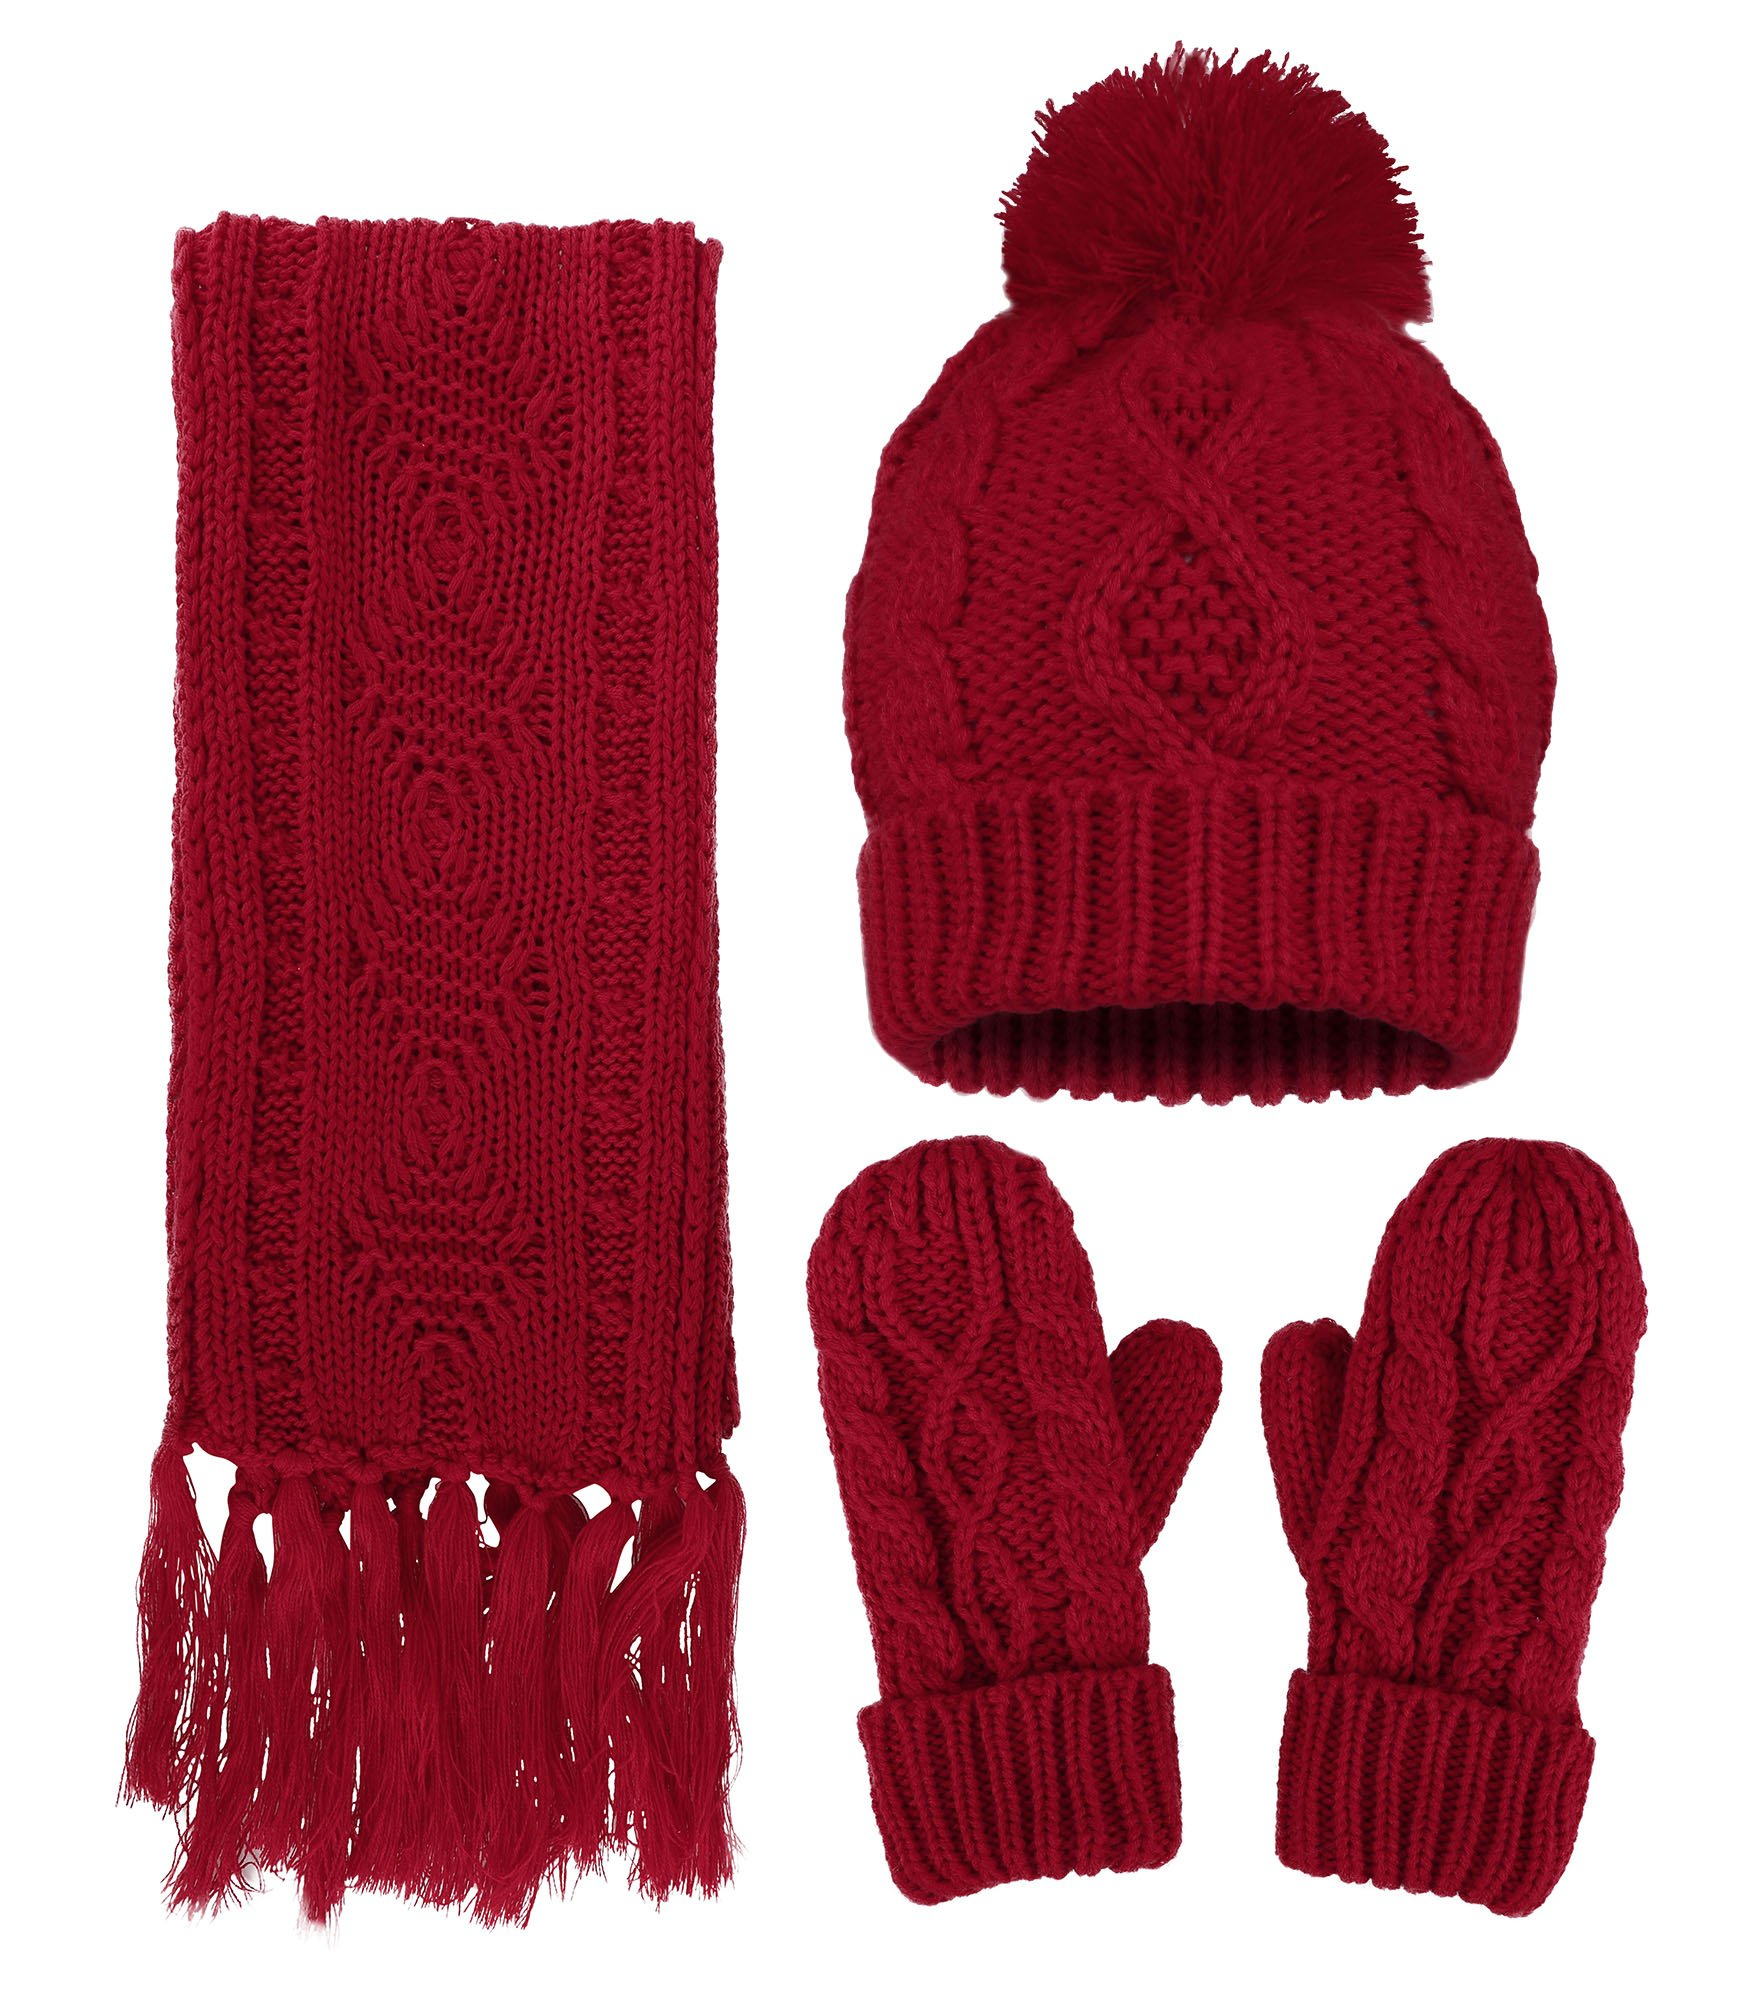 ANDORRA - 3 in 1 - Soft Warm Thick Cable Hat Scarf & Gloves Winter Set, Red